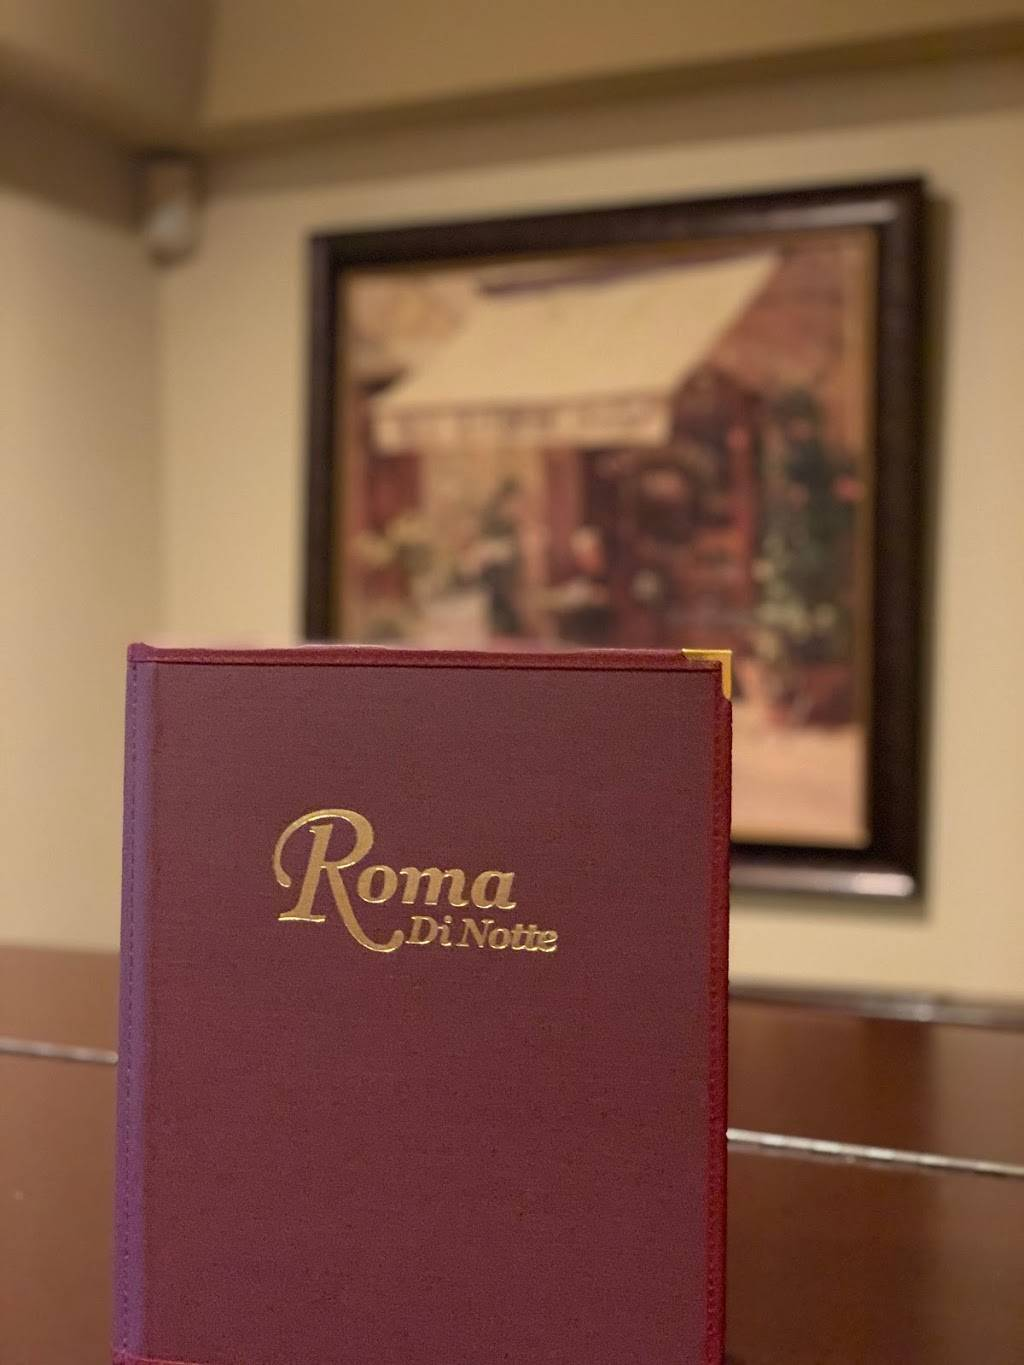 Roma Di Notte | restaurant | 457 County Rd 111, Manorville, NY 11949, USA | 6312811616 OR +1 631-281-1616